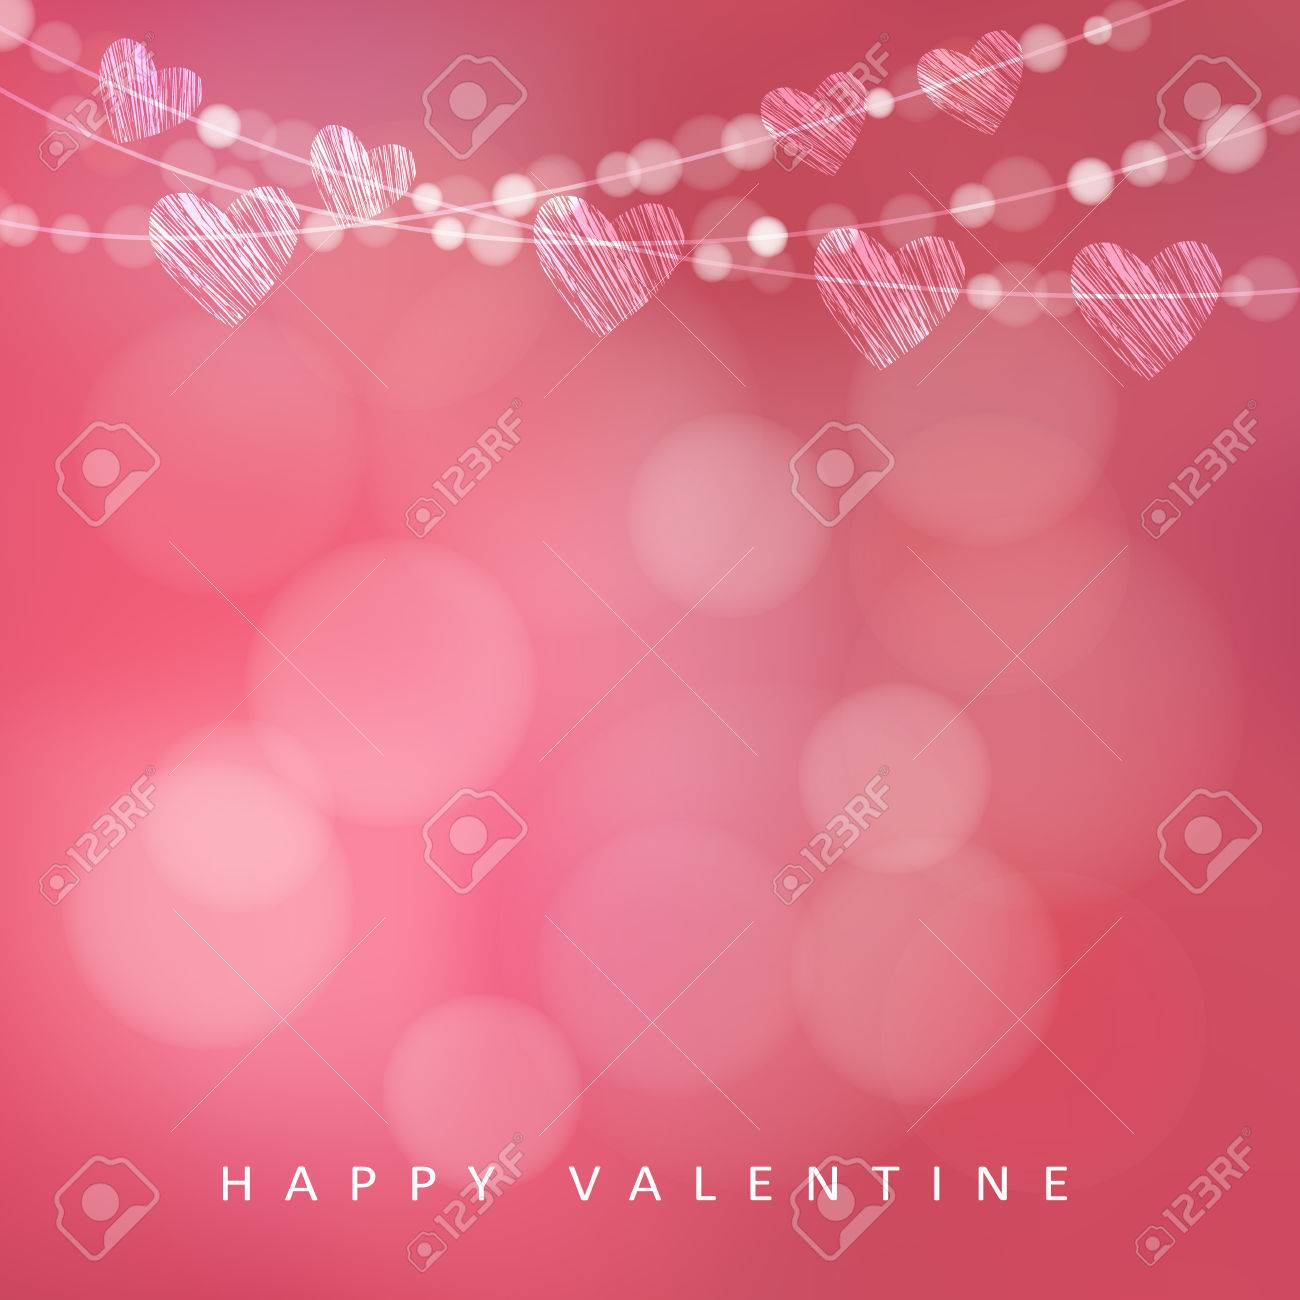 Valentines day card with garland of lights and hearts, vector illustration background - 51290458